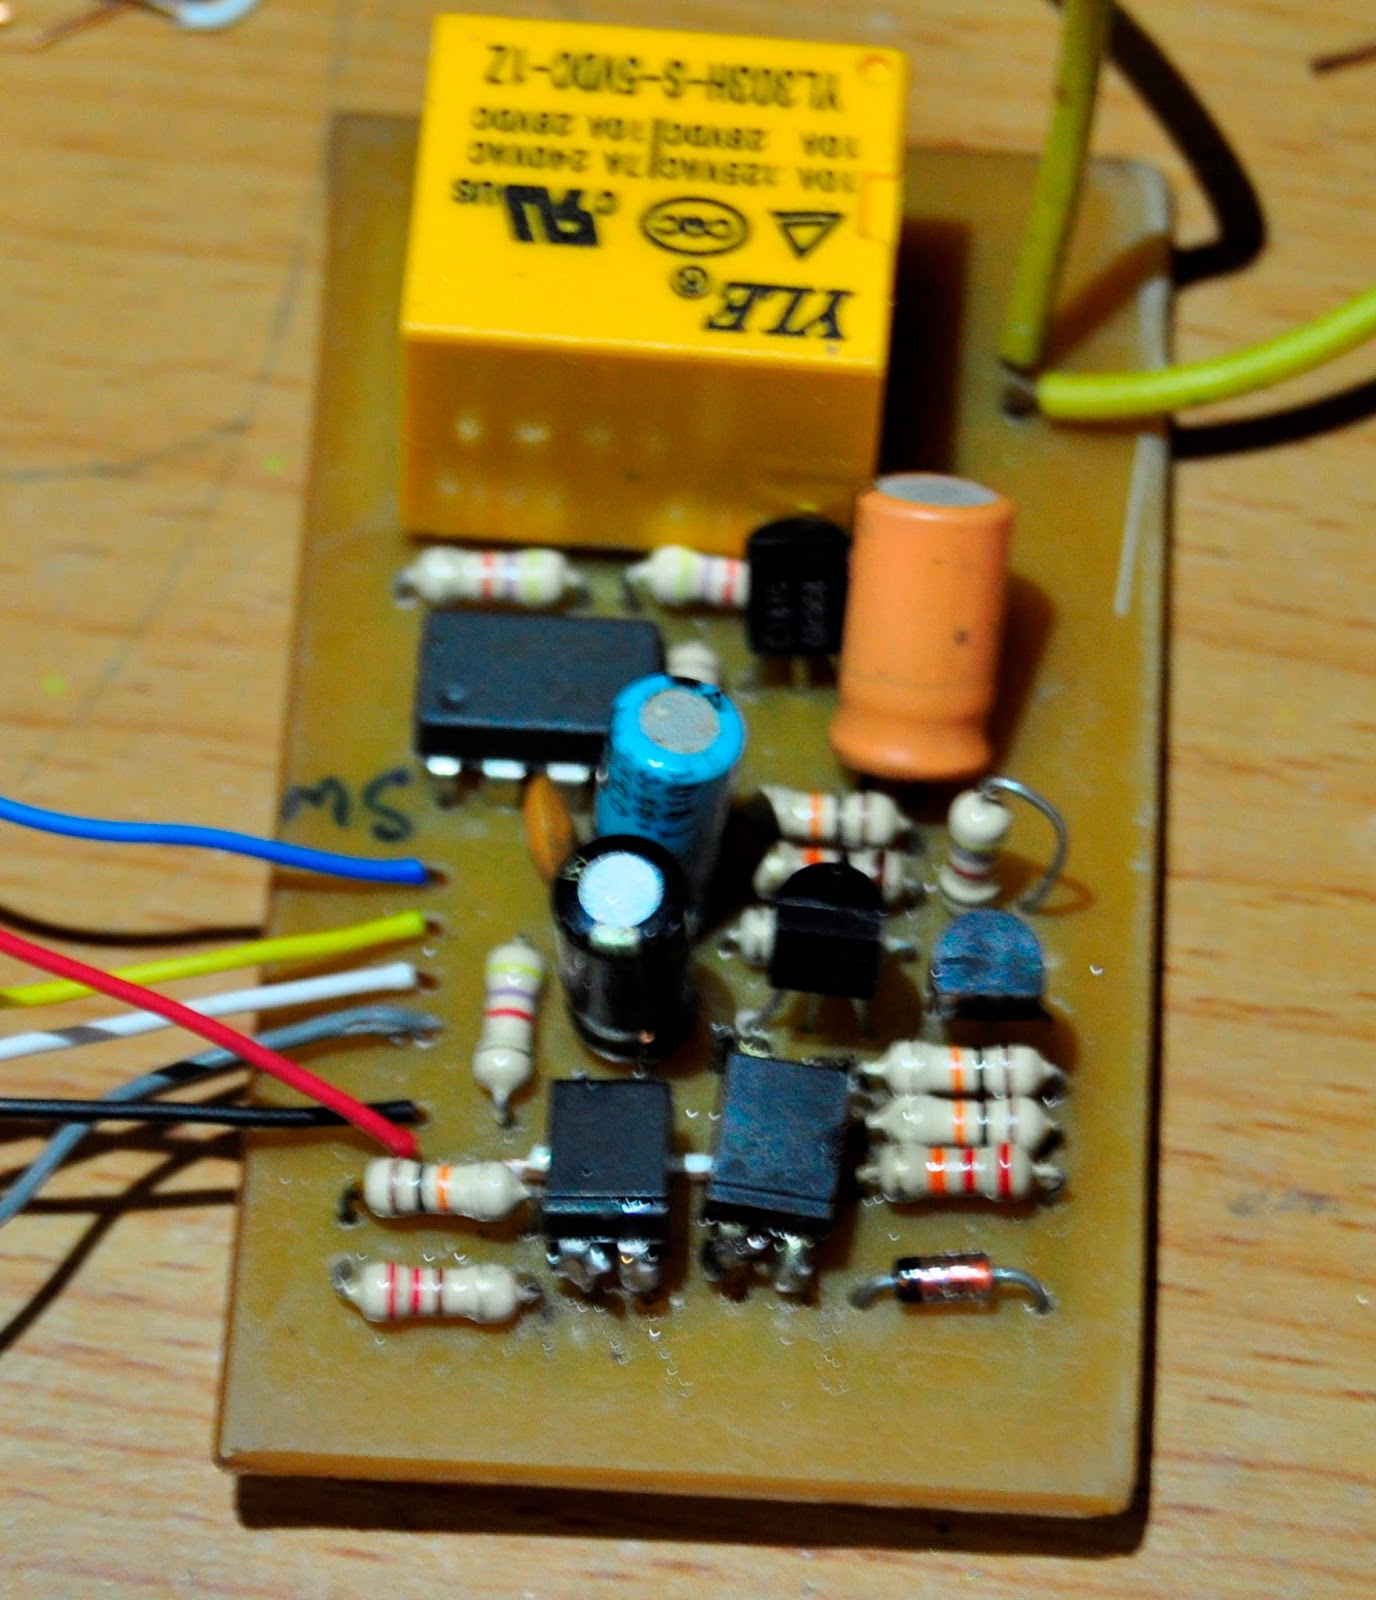 Wiringpi Pin Map Bcm Raspberry Pi Remote Light Switch By Phone Make It Easy Layout Mapping